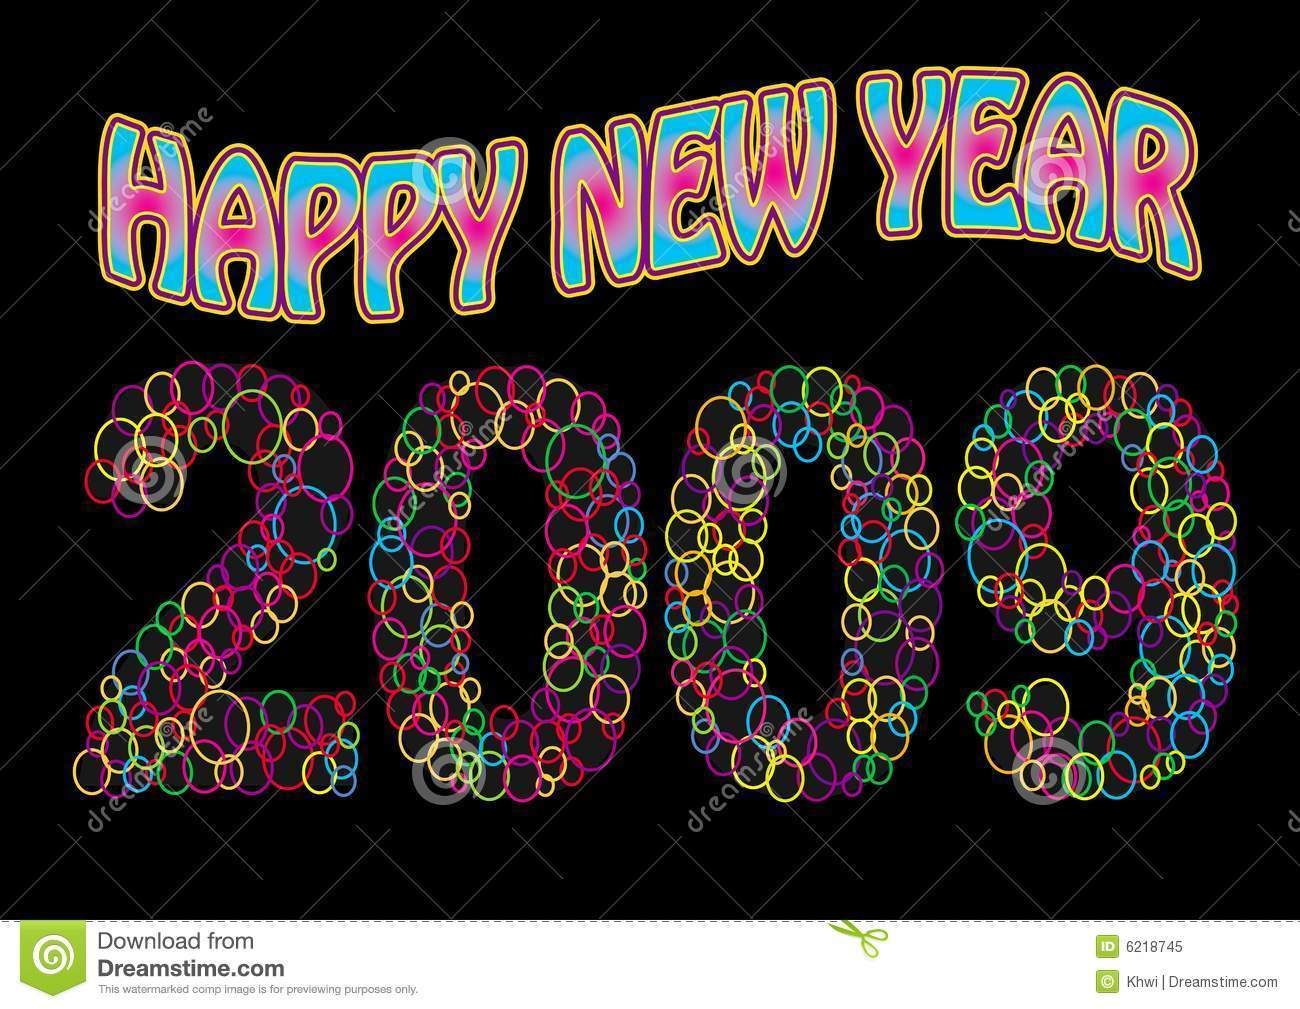 Happy new year 2009 clipart image freeuse Happy new year 2009 clipart 9 » Clipart Portal image freeuse